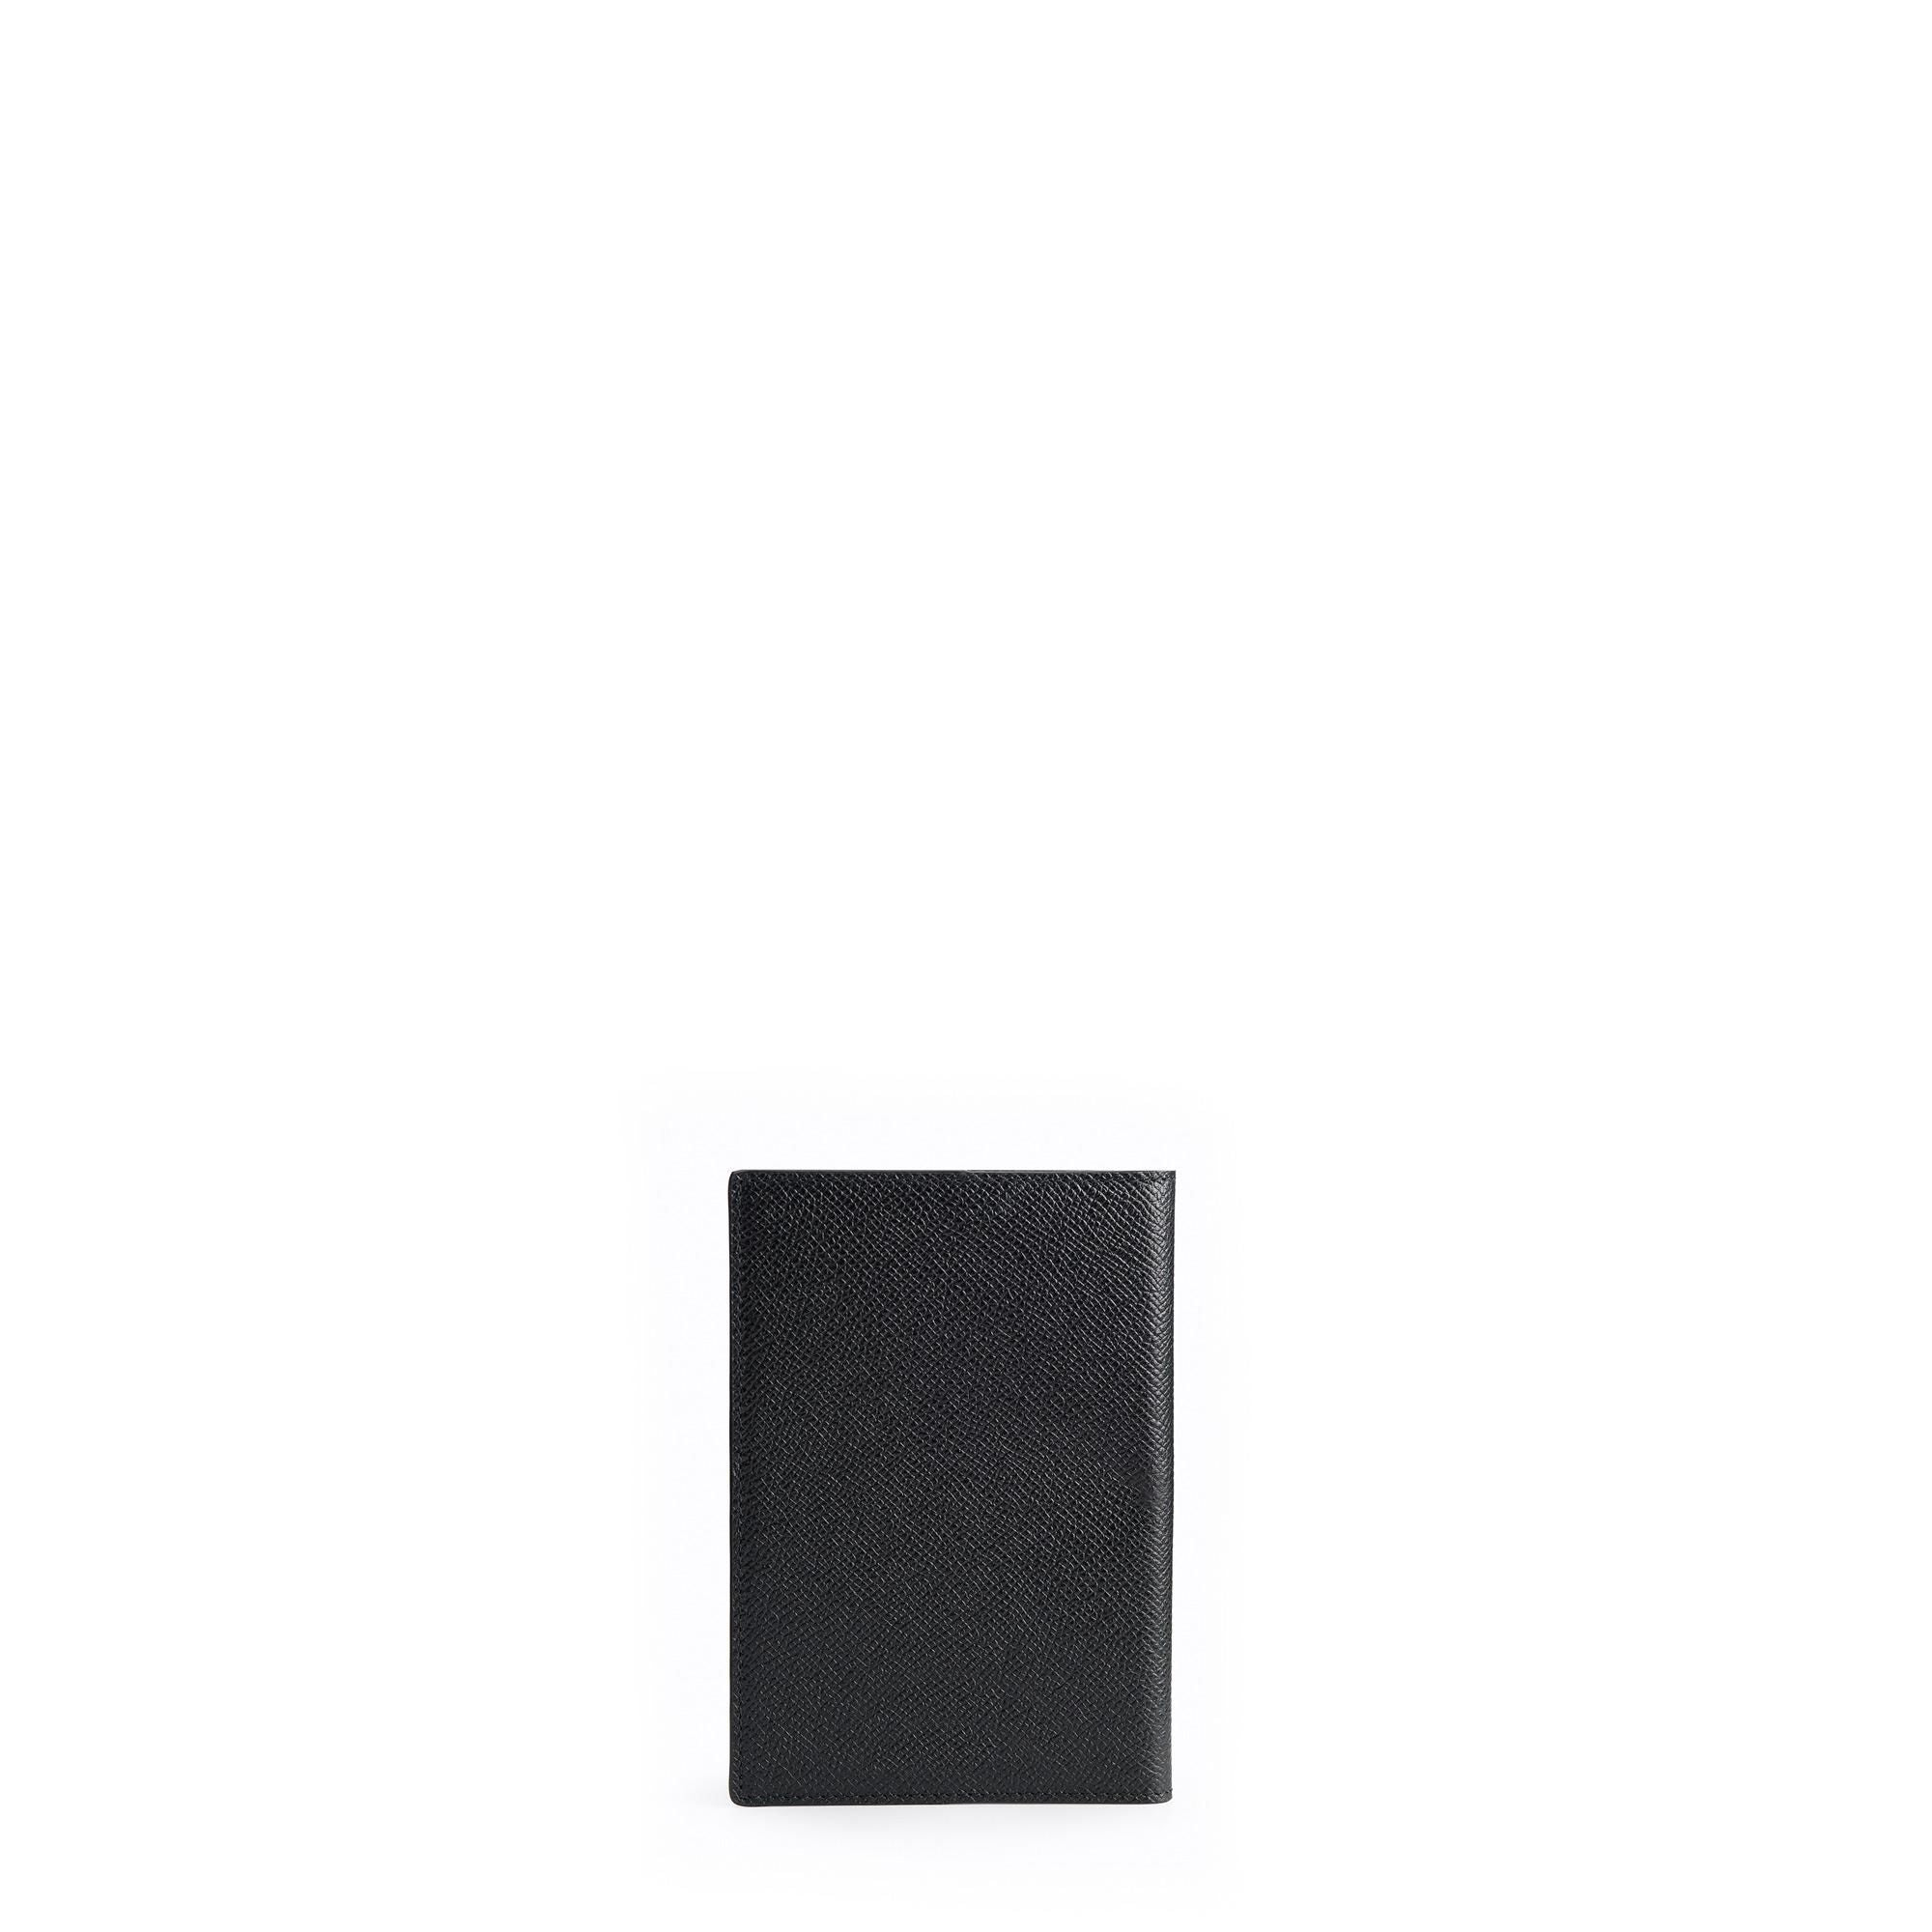 Passport Cover in Saffiano Leather - Black Saffiano